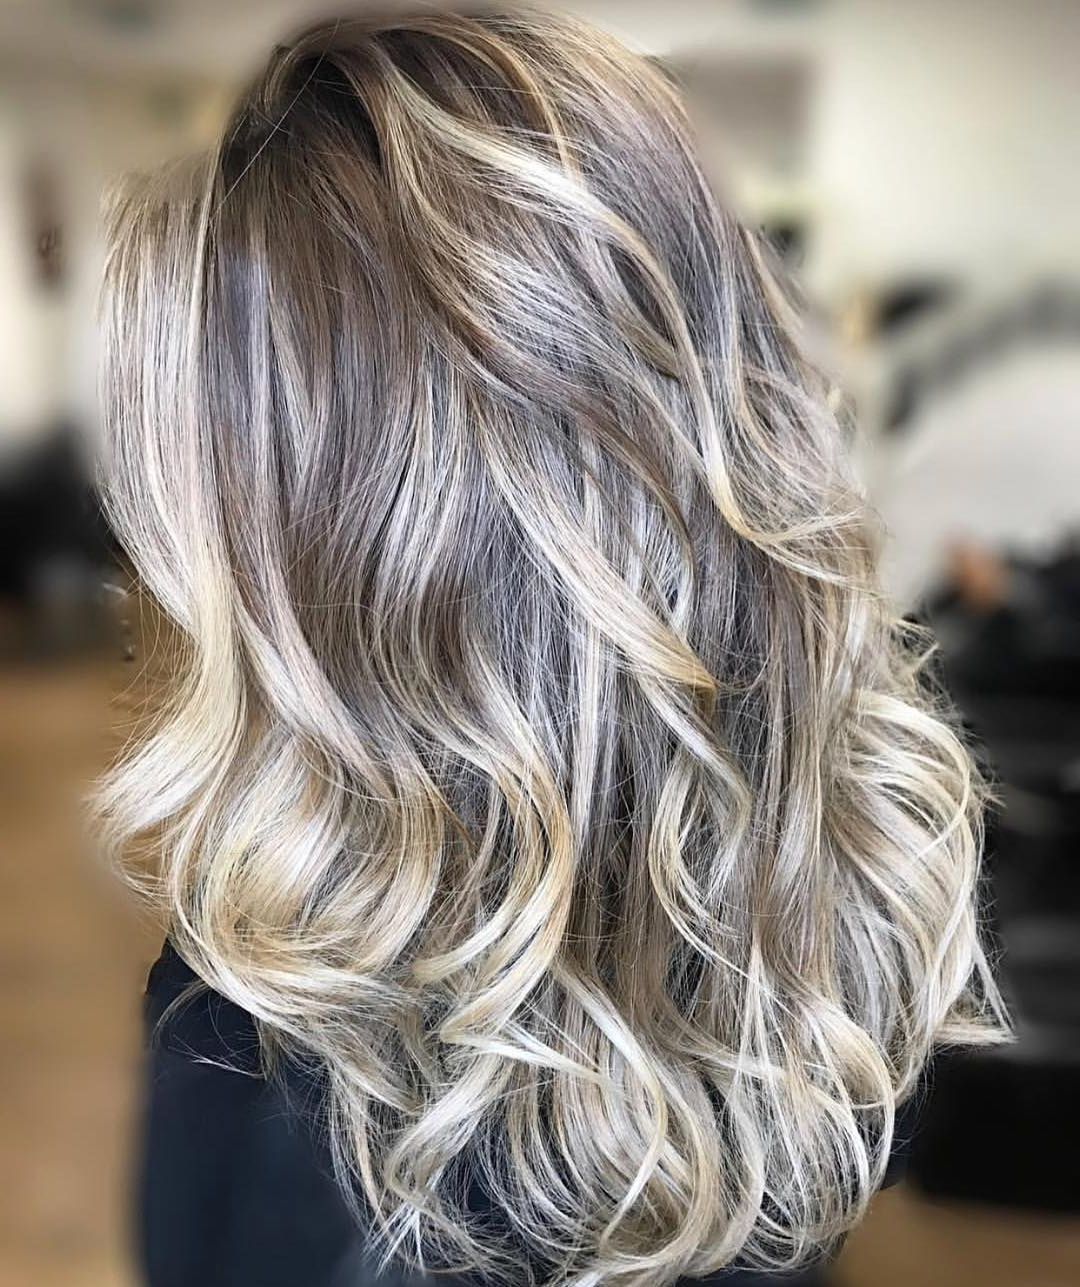 Well Liked Long Dark Hairstyles With Blonde Contour Balayage Inside Balayage 101: The Fullest Guide To Balayage Hair (View 6 of 20)